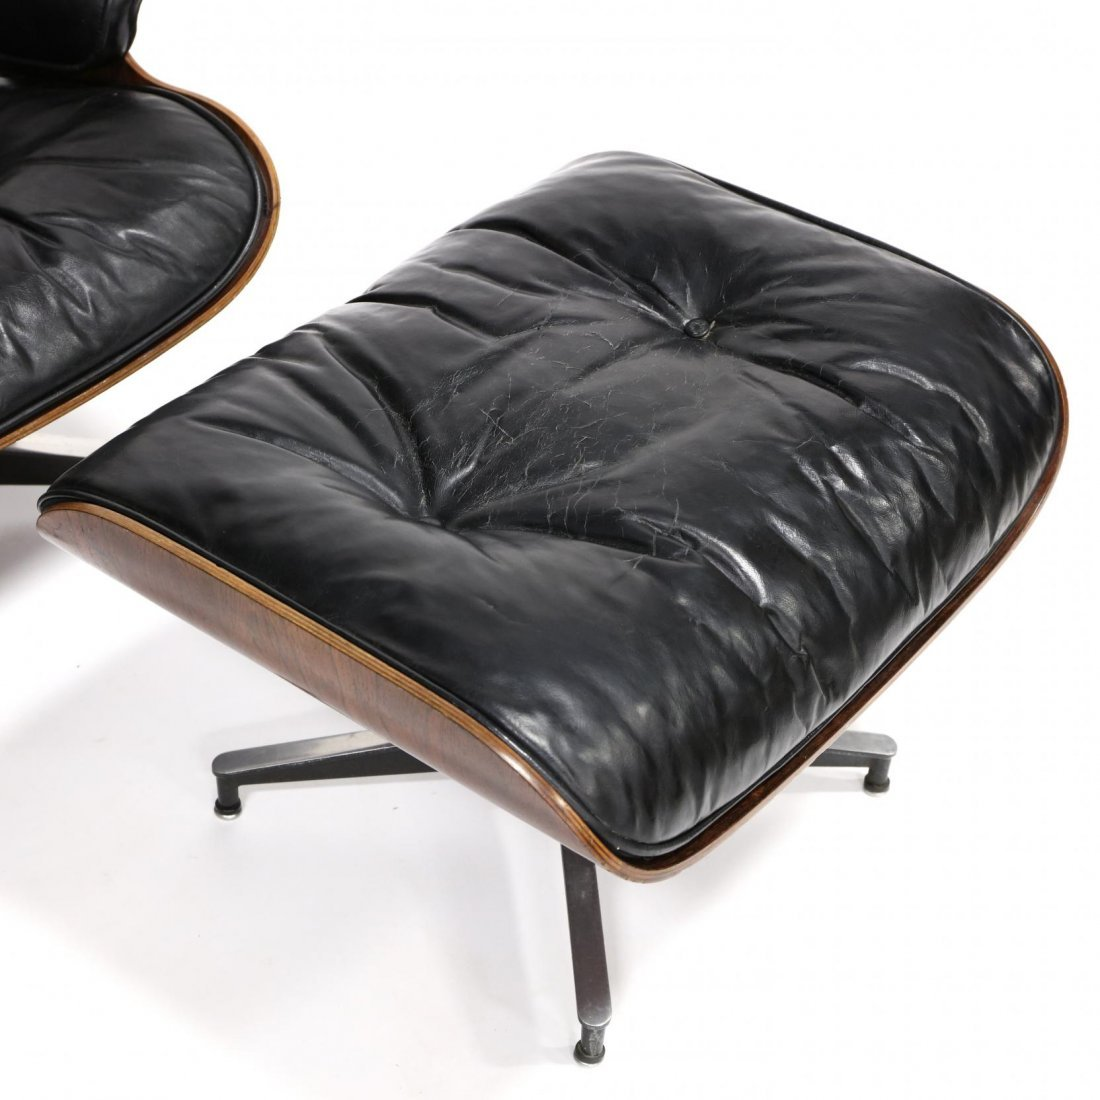 Charles Eames, 670/671 Vintage Lounge Chair and Ottoman - 2